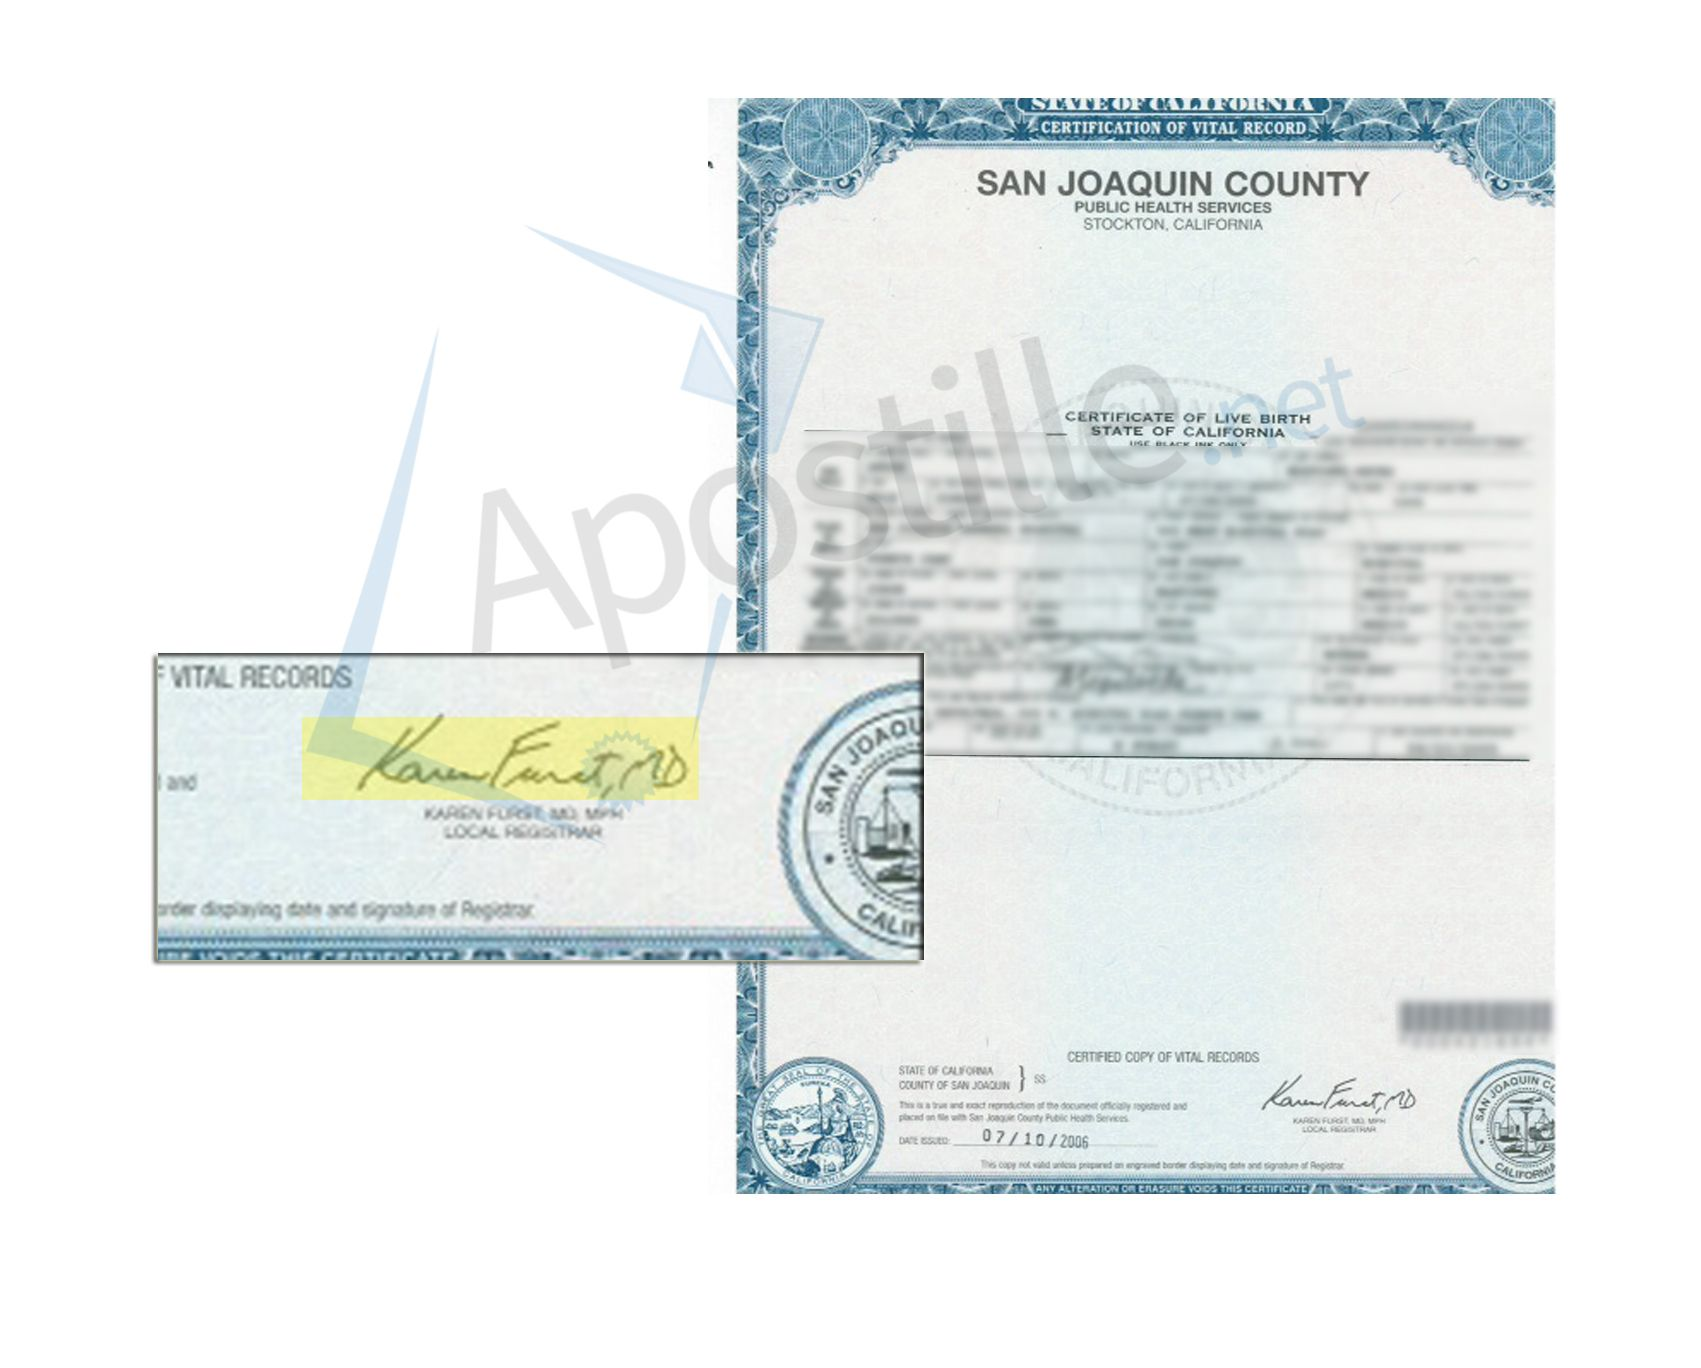 County Of San Joaquin Certificate Of Birth Signed By Karen Furst